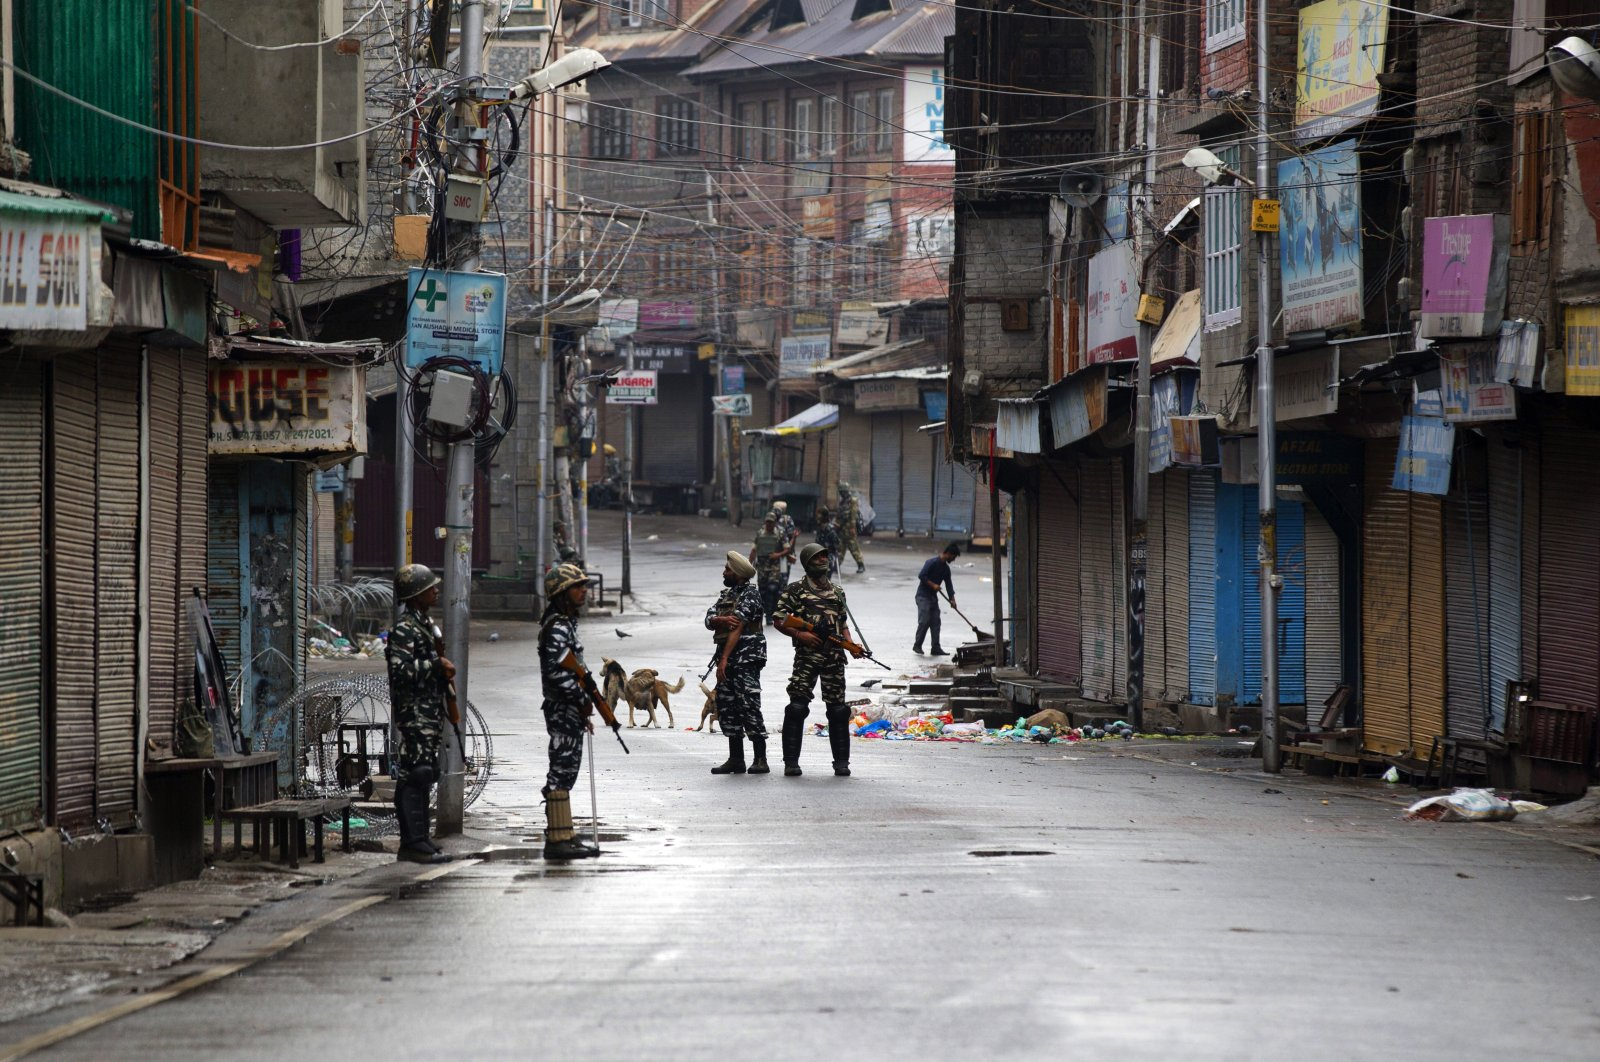 Indian paramilitary soldiers stand guard on a deserted street during curfew, Srinagar, Aug. 8, 2019. (AP Photo)